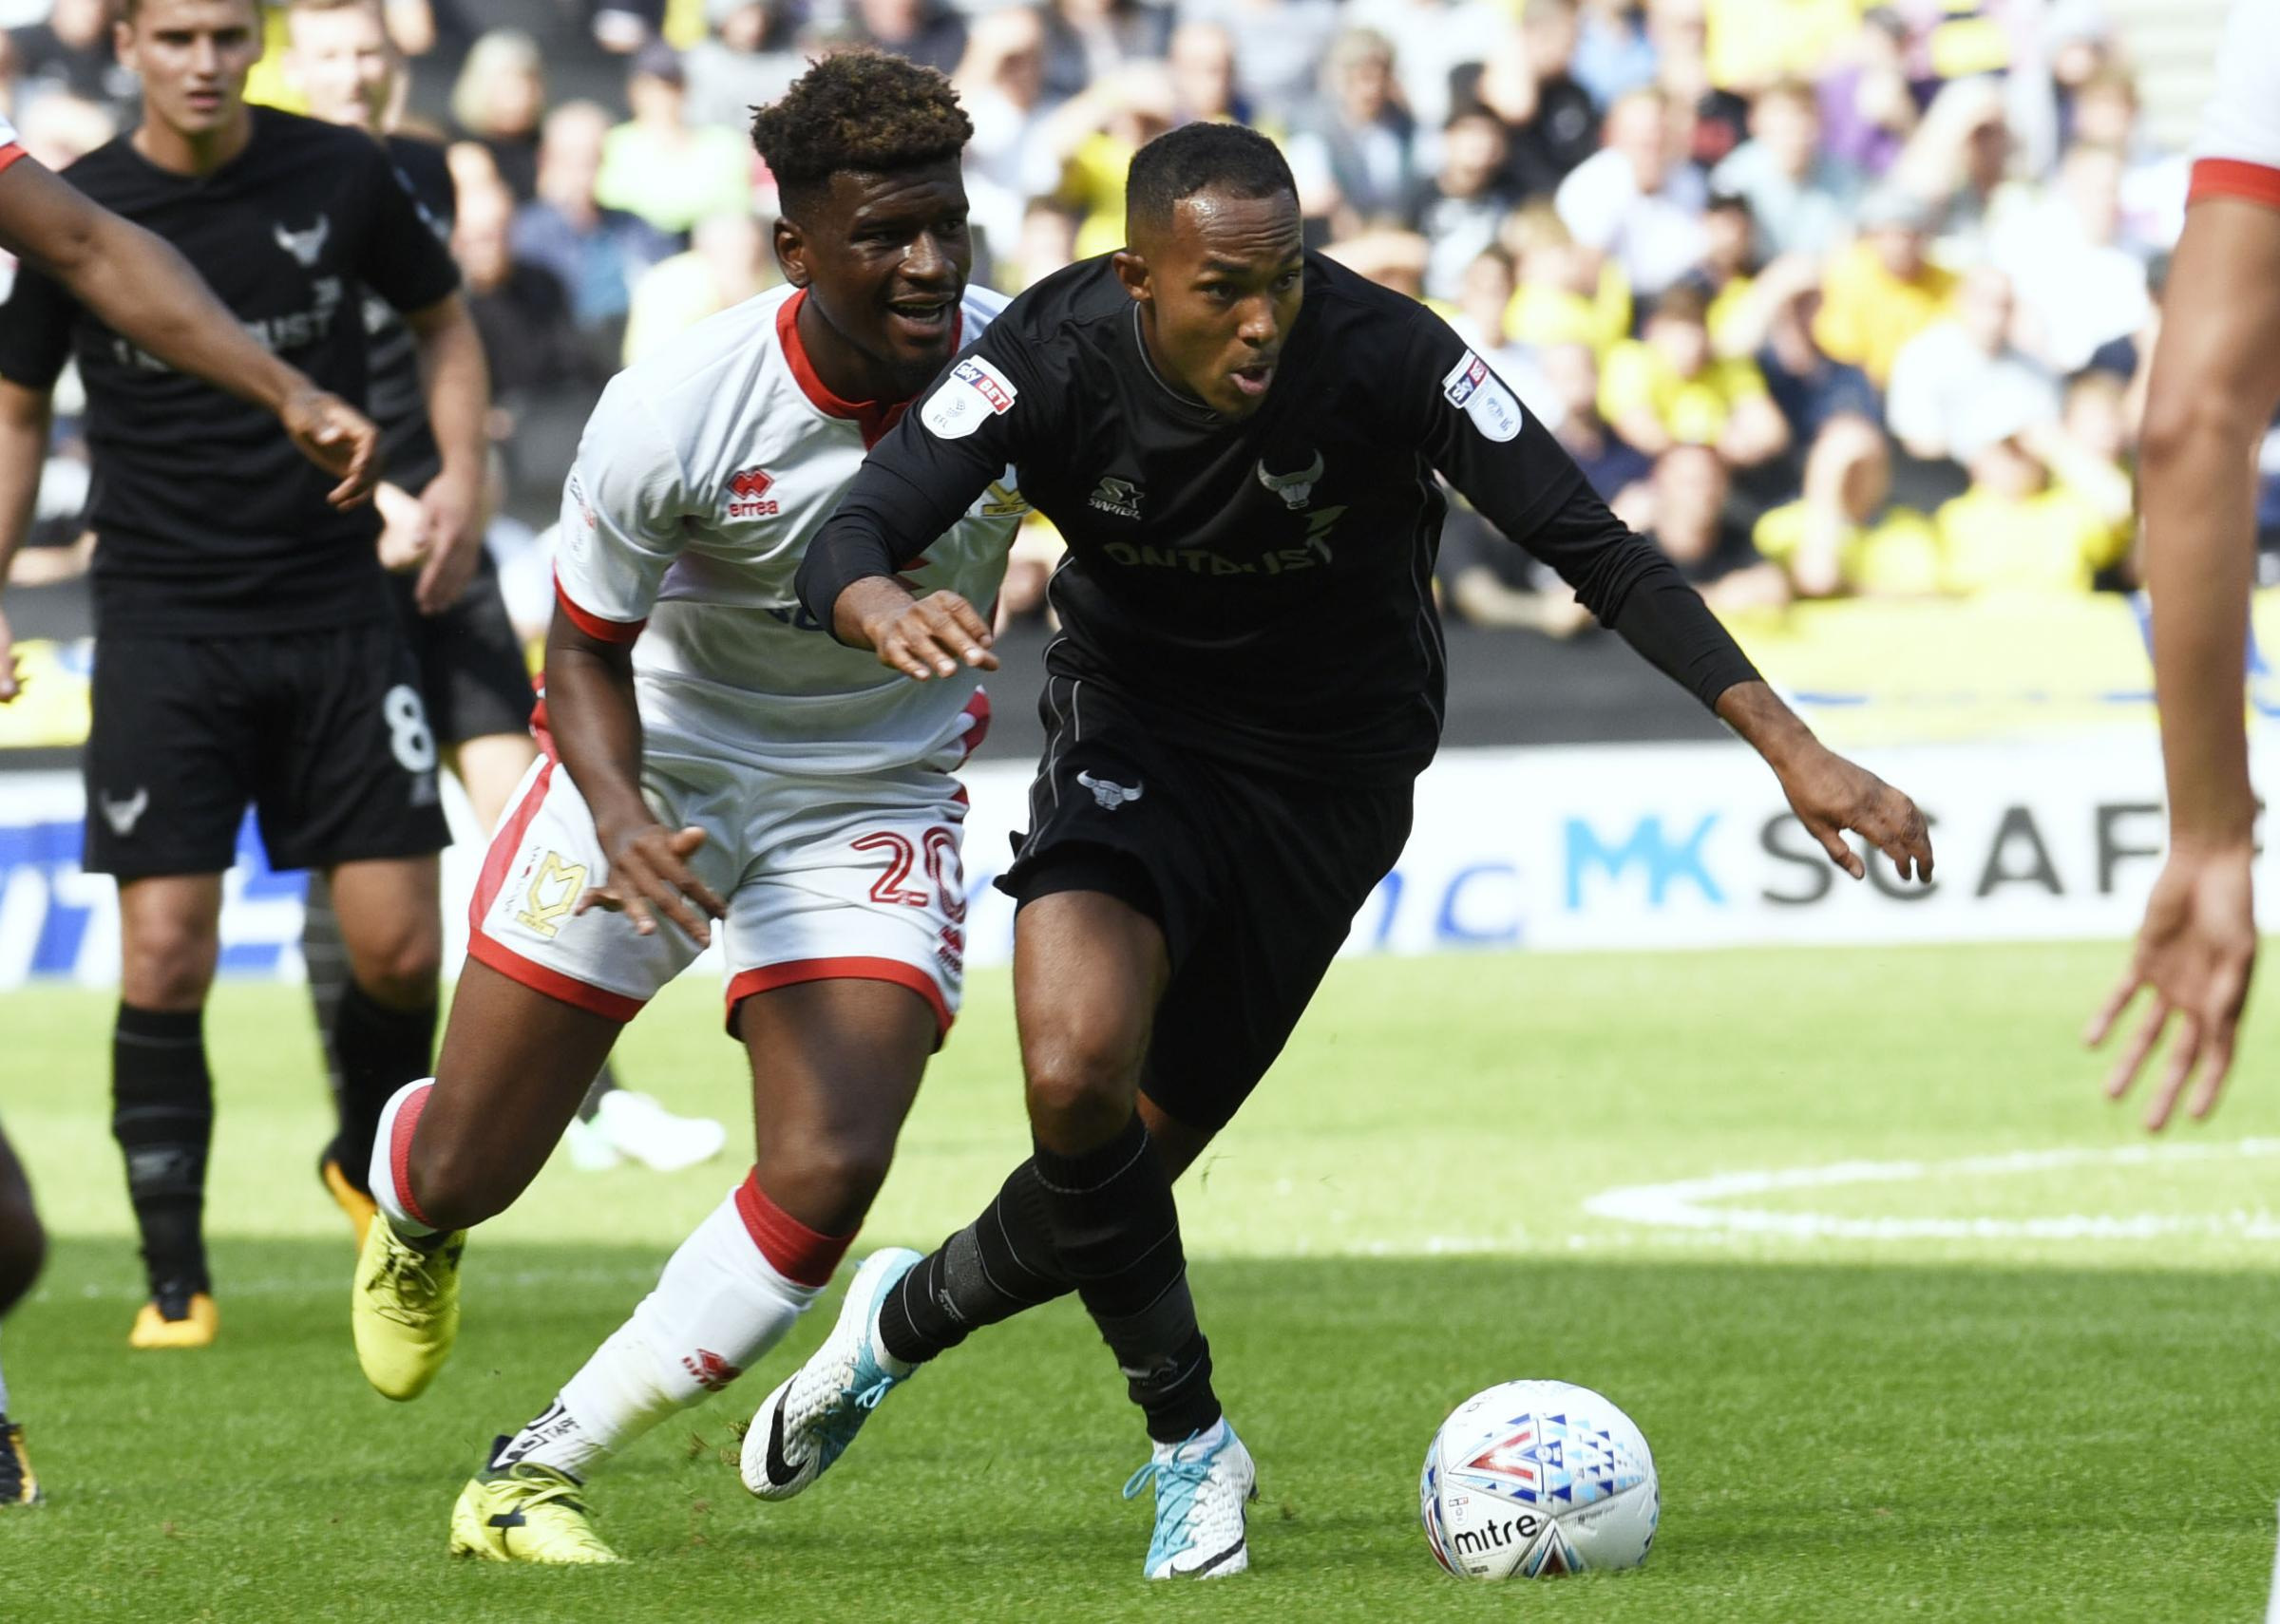 PROGRESSING: Winger Rob Hall is well on the way to recovering from an injury, along with midfielders Ivo Pekalski and Cameron Brannagan  Picture : David Fleming